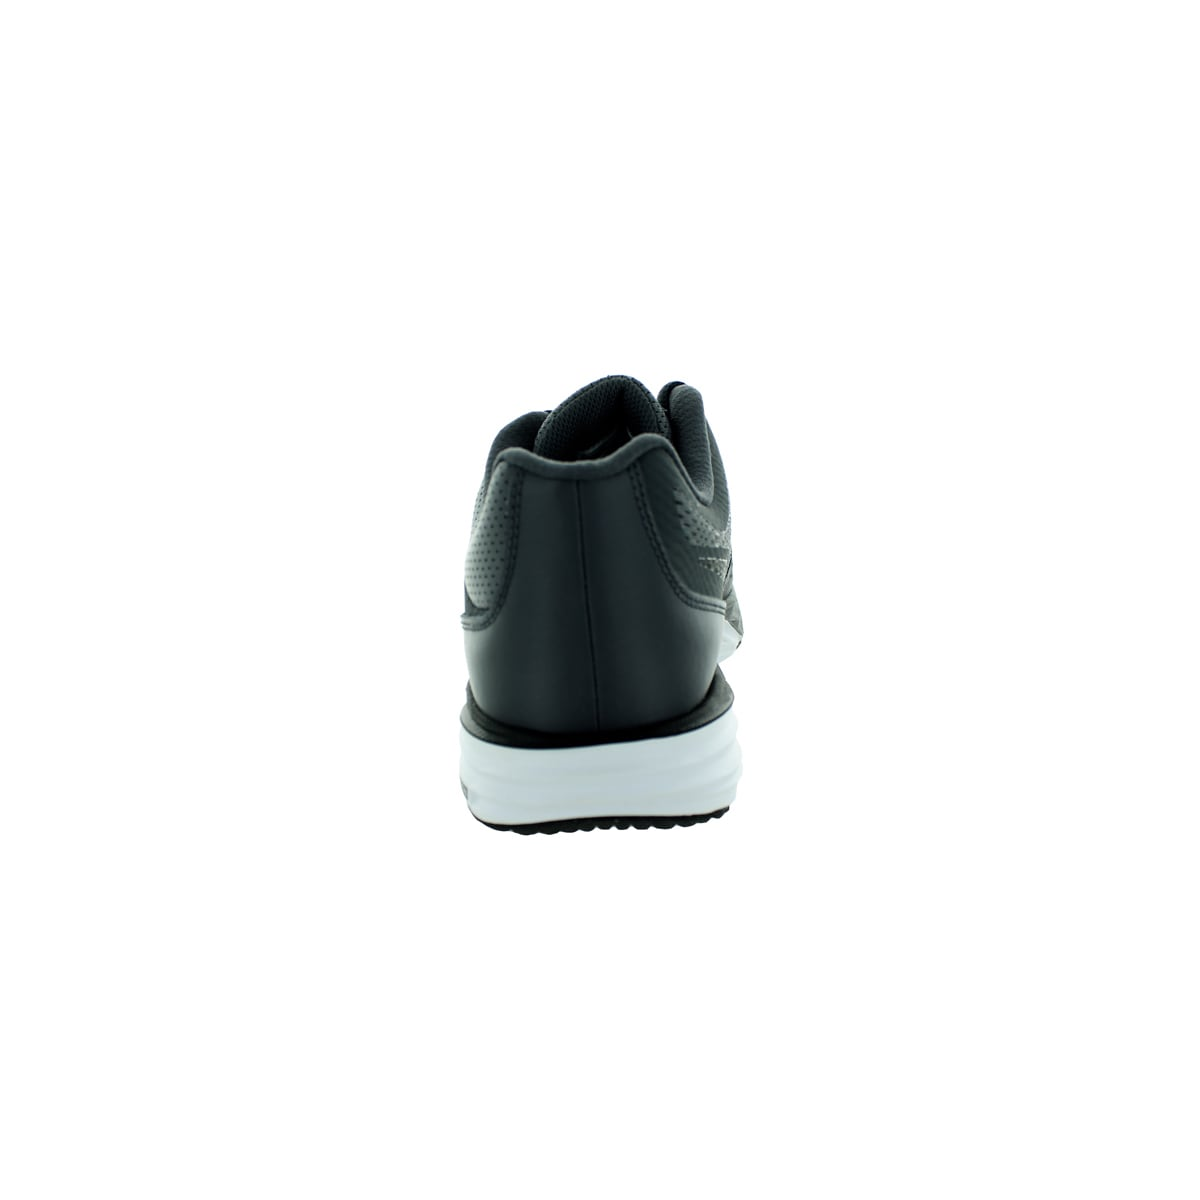 a5a8e0a0bb9 Shop Nike Men s Tri Fusion Run Dark Grey Black White Running Shoe - Free  Shipping Today - Overstock.com - 12119096